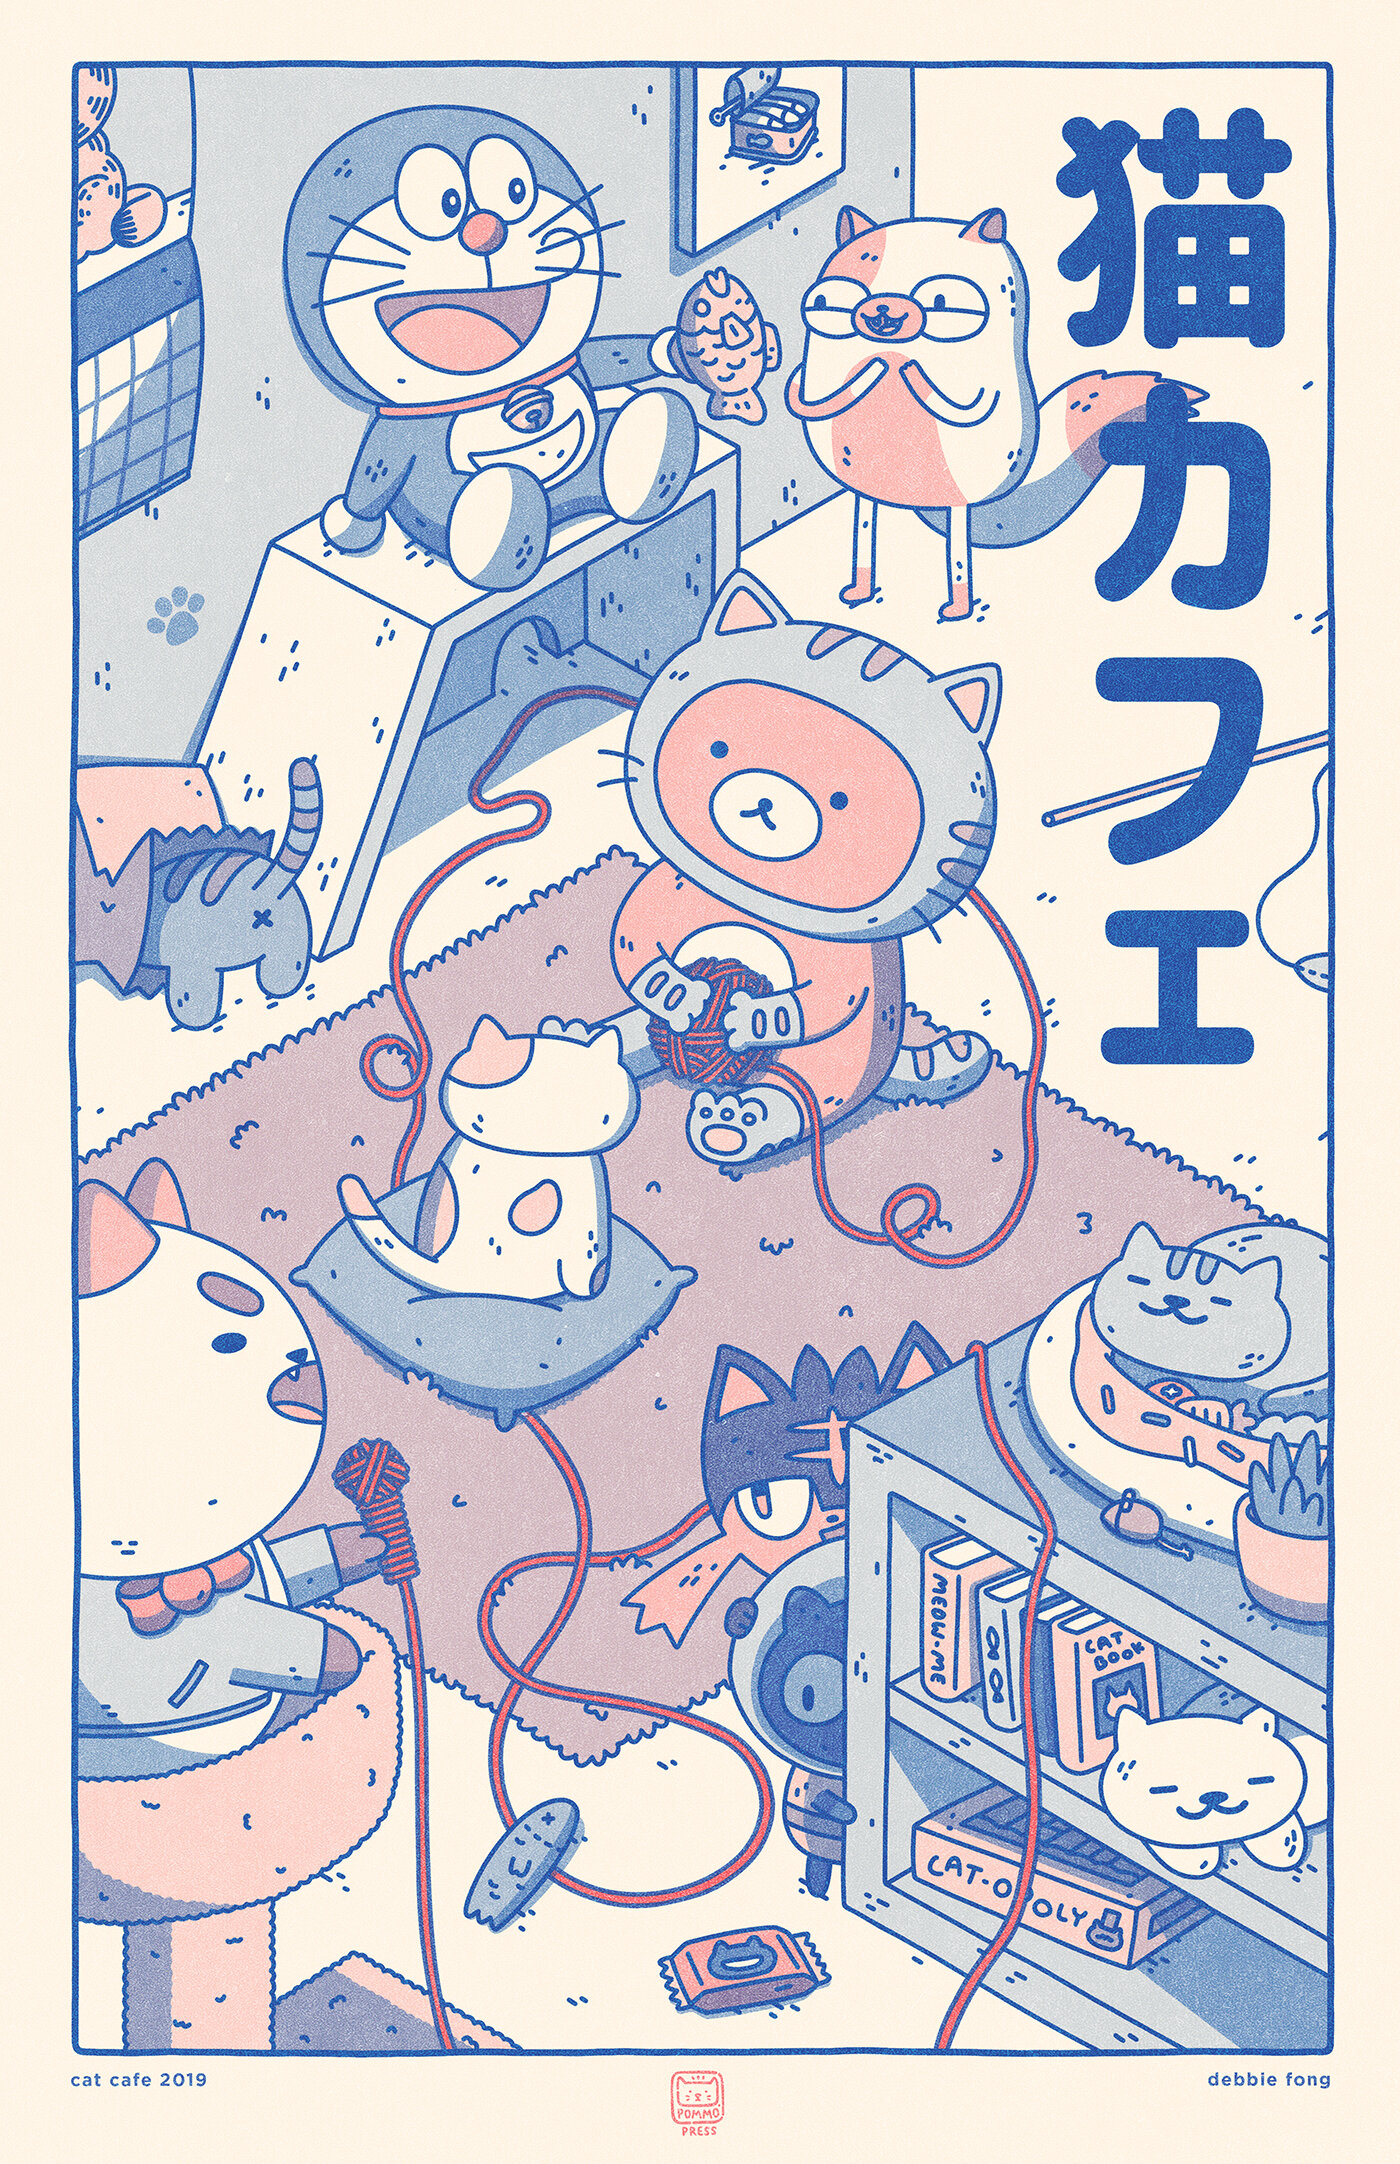 Cat Cafe - Blue, Bright Red